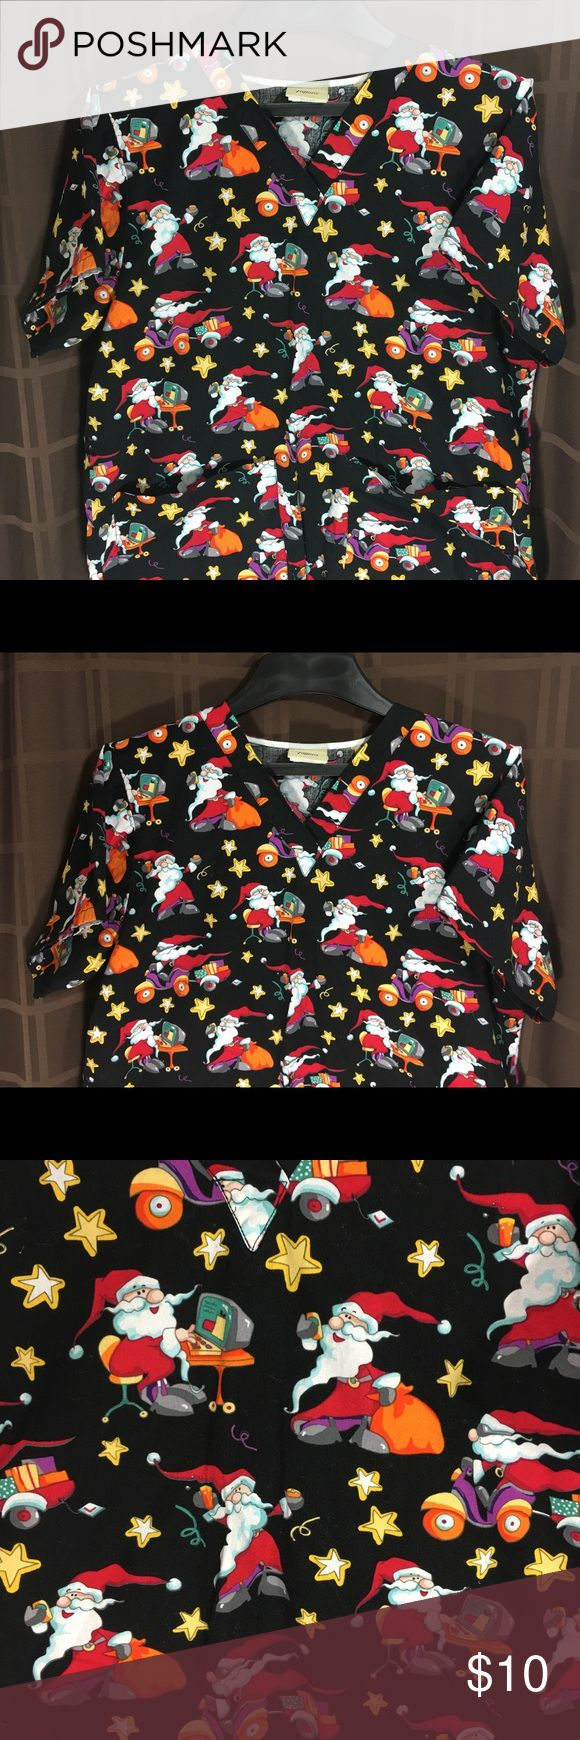 Tafford Nurses Uniform Scrub SantaclausBlack Sz M You Are Buying Tafford Nurses Uniform Scrub Santaclaus Print  2 Pocket Black Sz M Medium  It is in great  pre-own Condition.  Fast shipping in the USA via USPS.  FEEDBACK: we strive to earn positive 5 star feedback for all items. And we will leave the same for all good buyers.  If you feel we deserve anything less please send us a message before leaving anything less or opening a case and we will fix the issue within 24 hours.   Thank you…